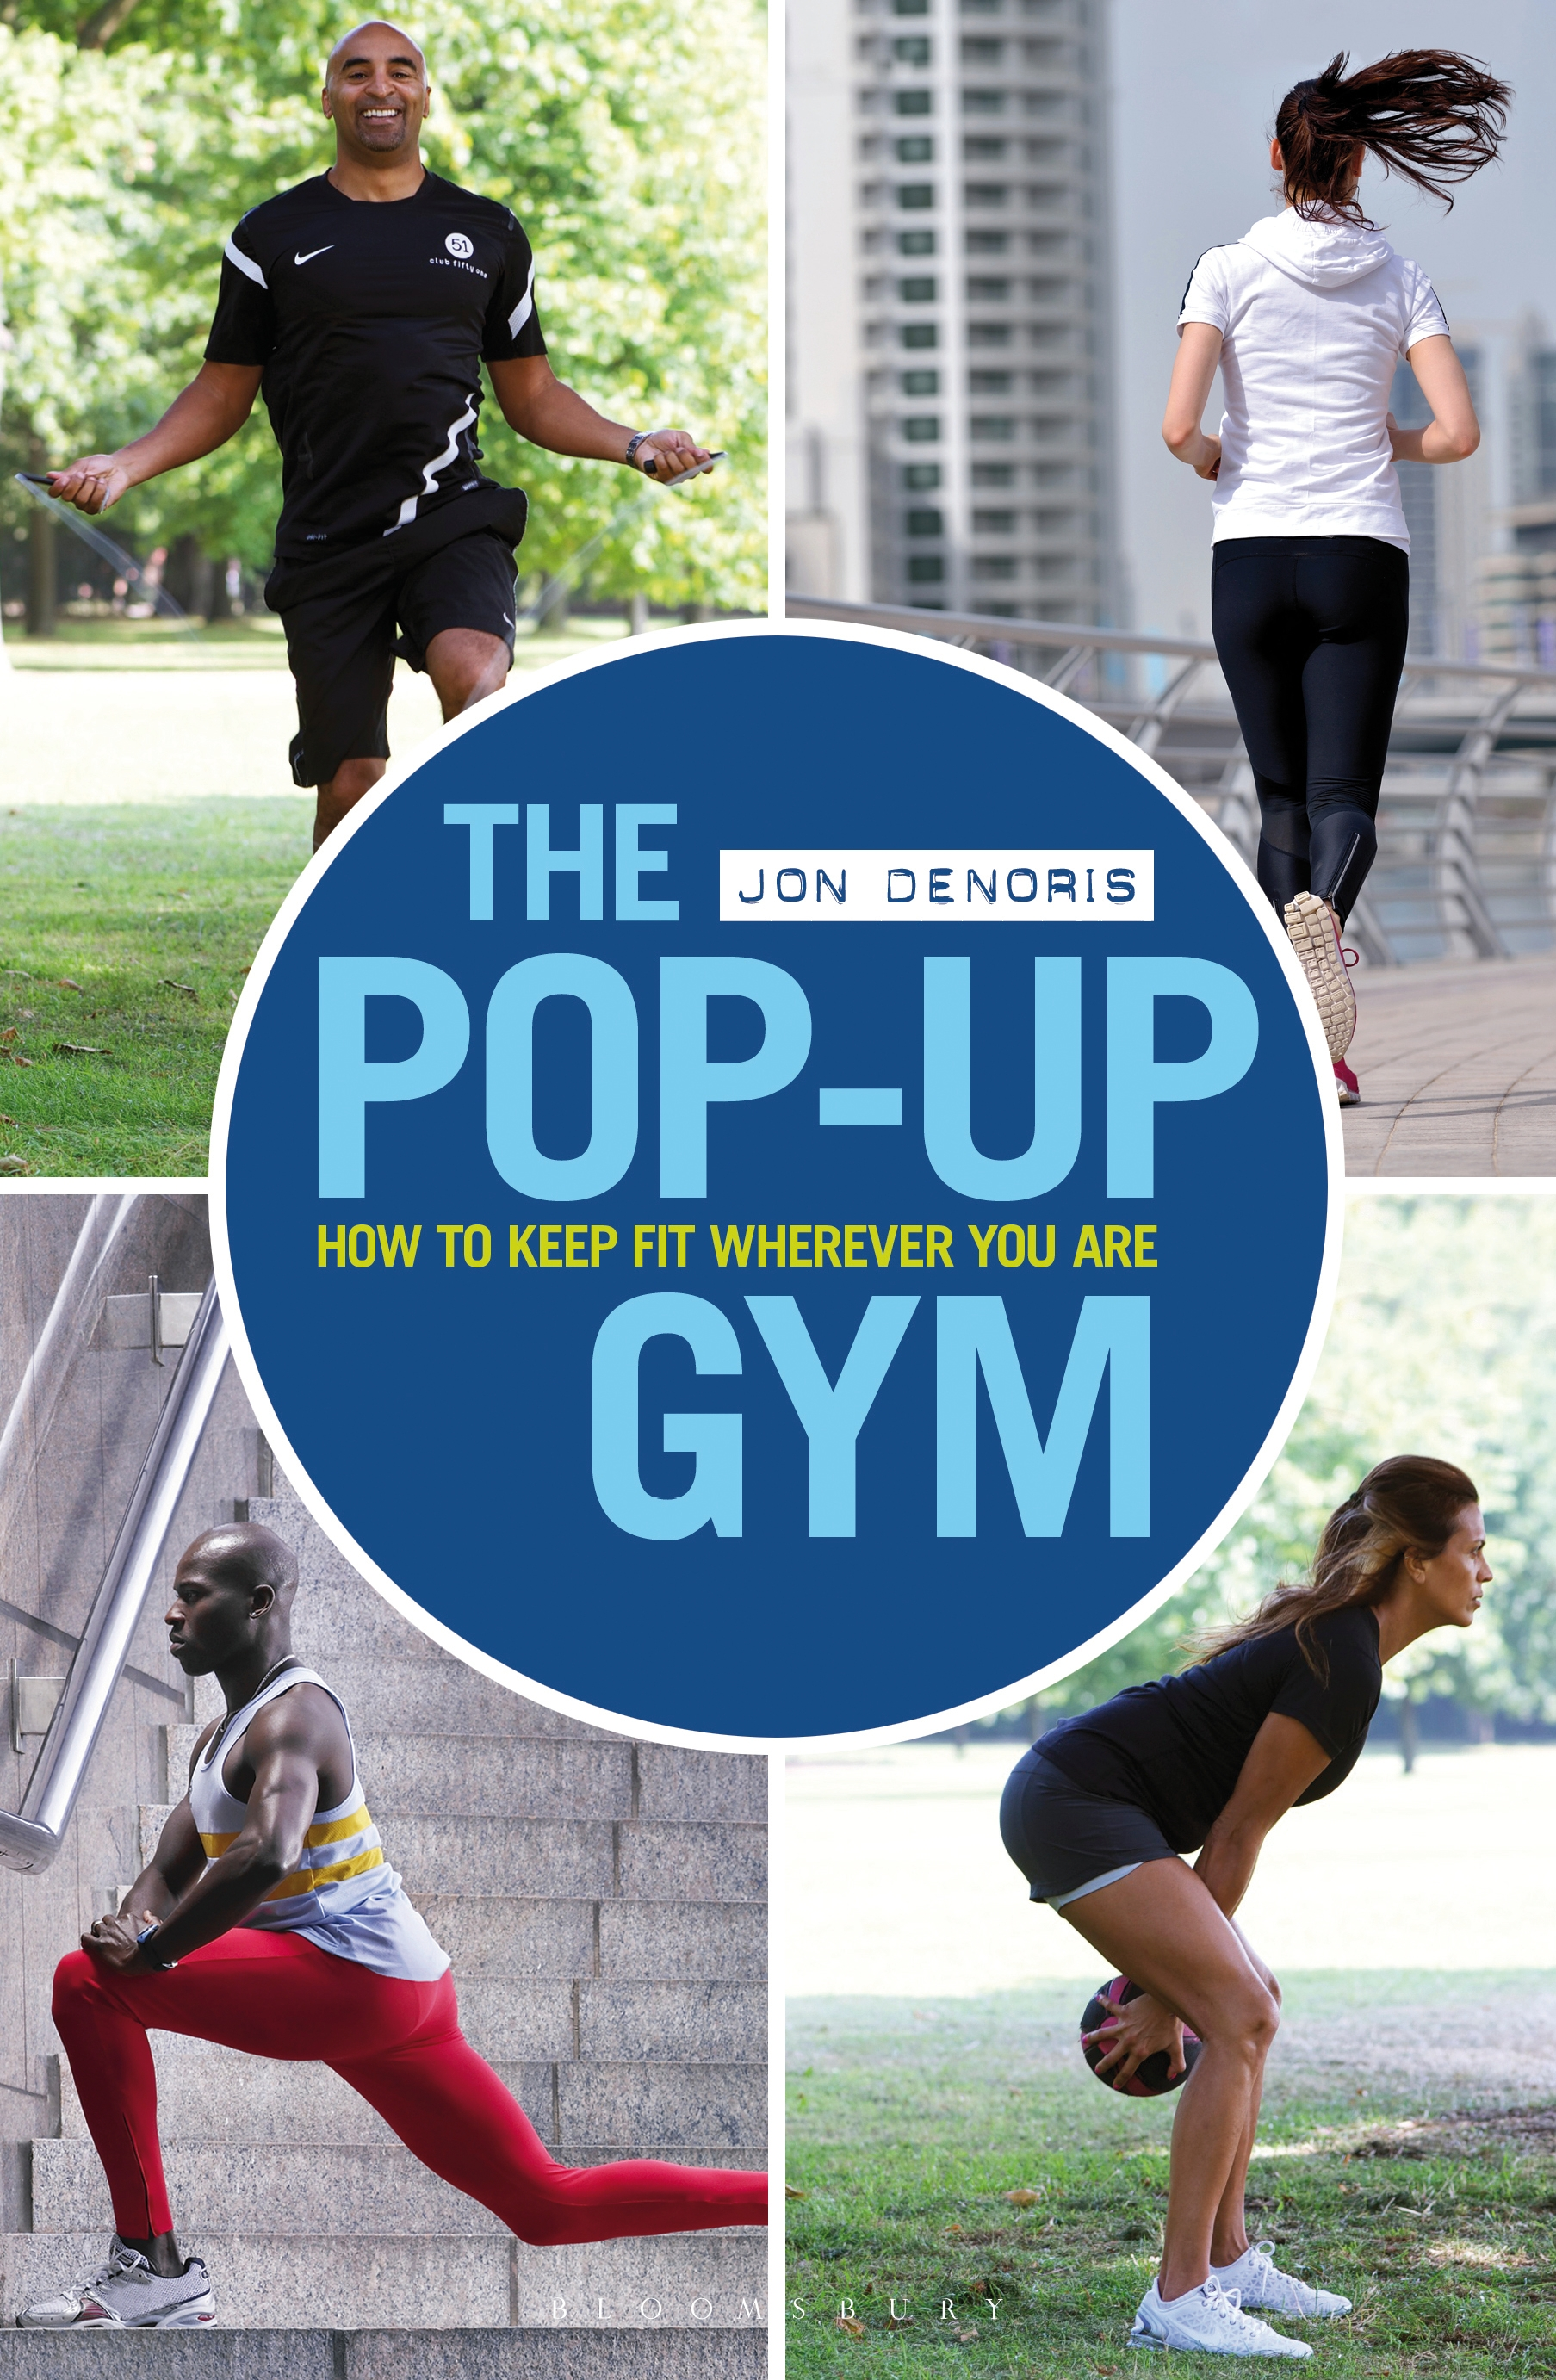 The Pop-up Gym How to Keep Fit Wherever You Are